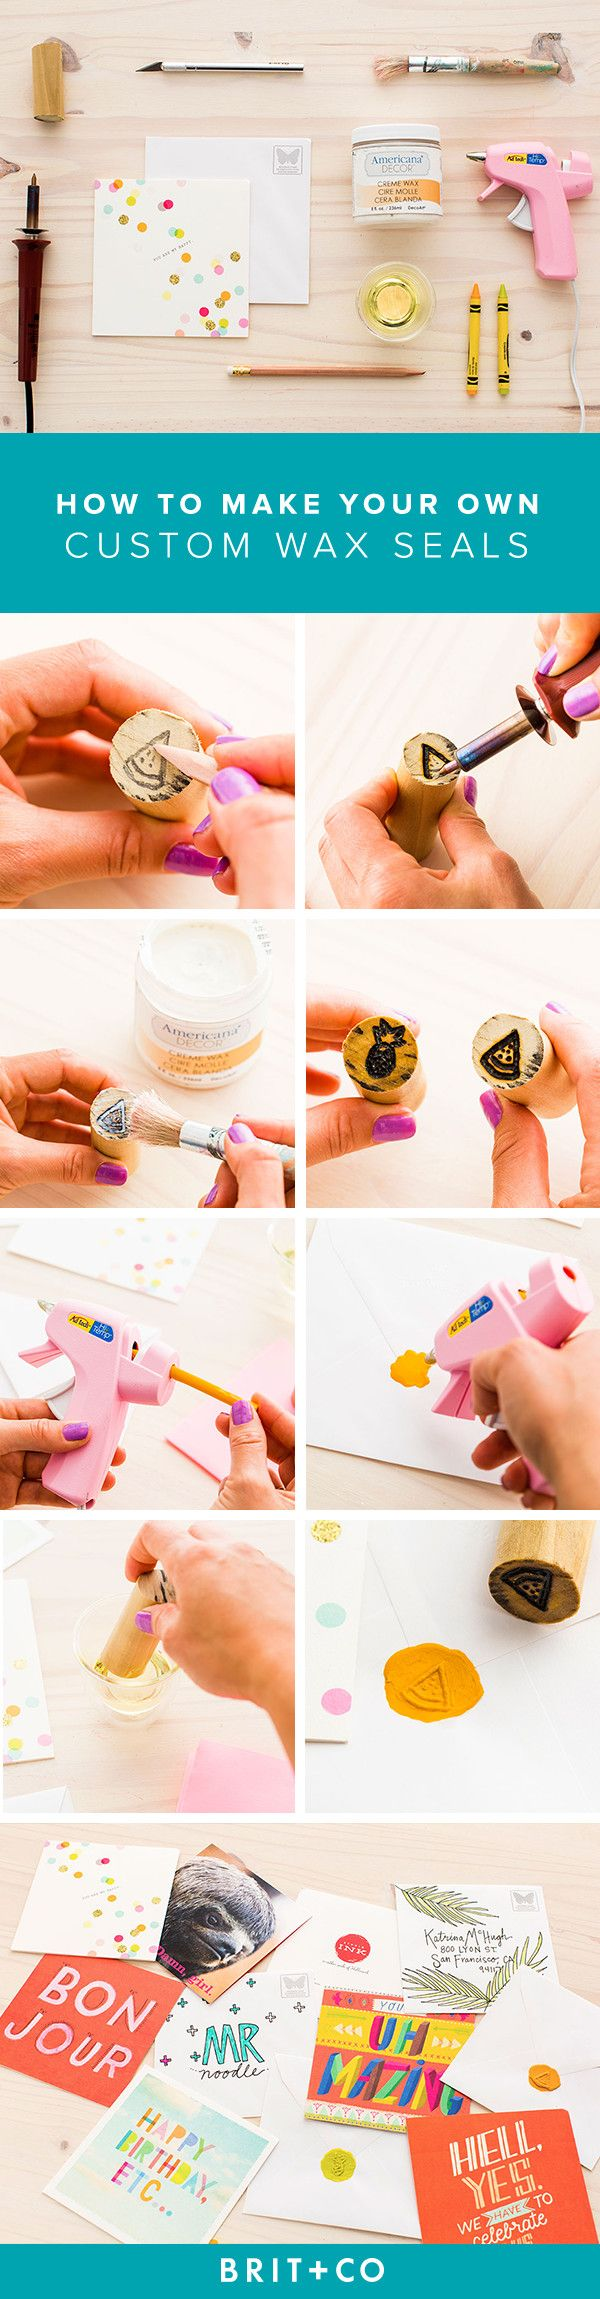 Using crayons, a pencil, a wood-burning tool, a hot glue gun, X-ACTO knife and paint brush, you can make your own custom wax seals. There's no better way to seal up your snail mail!